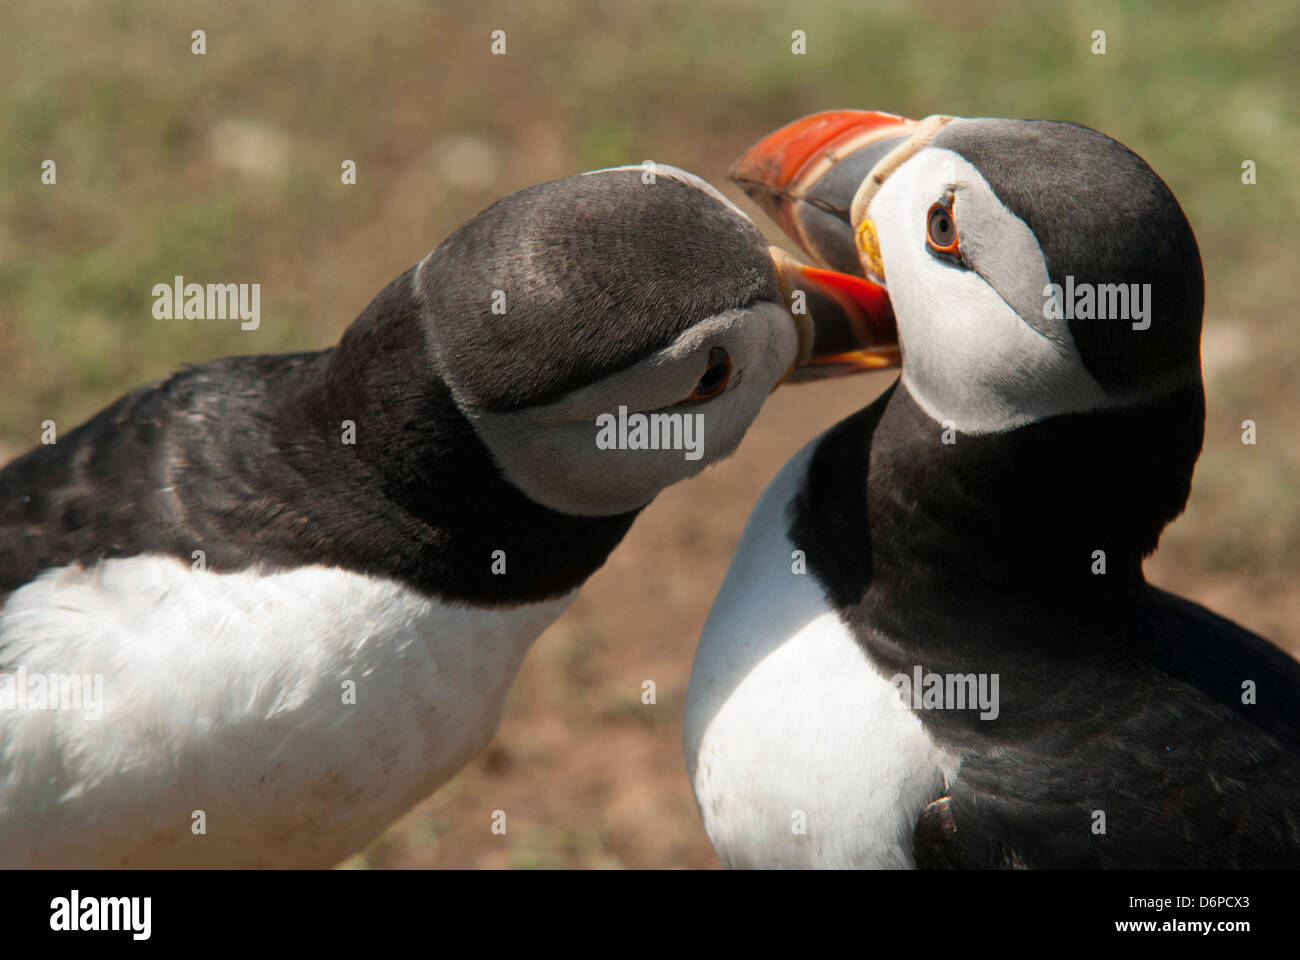 Two puffins billing, Wales, United Kingdom, Europe - Stock Image